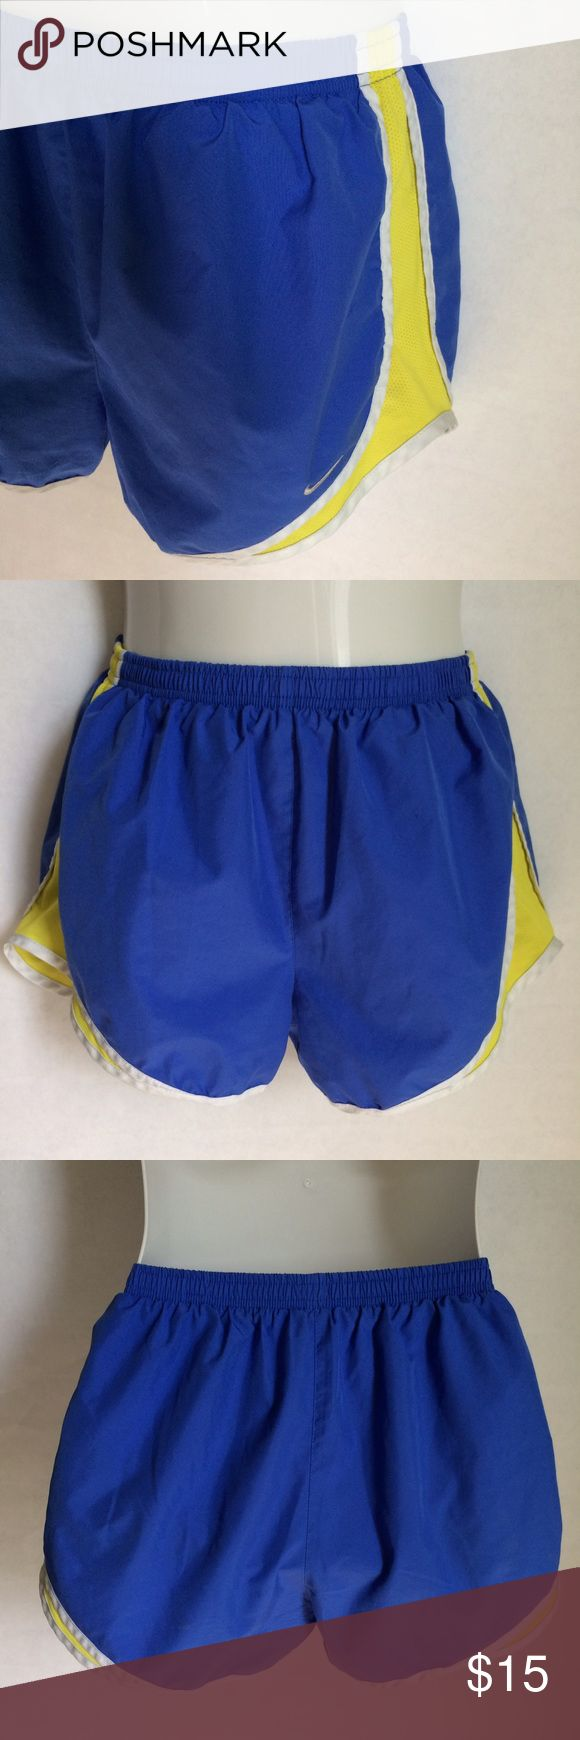 ✨NEW Listing✨Nike Tempo running shorts Nike Tempo Dri-FIT track shorts in royal blue with white trim and bright yellow side panels. Underwear lining. Elastic waistband. Size M. 100% polyester. Not interested in trades. Nike Shorts